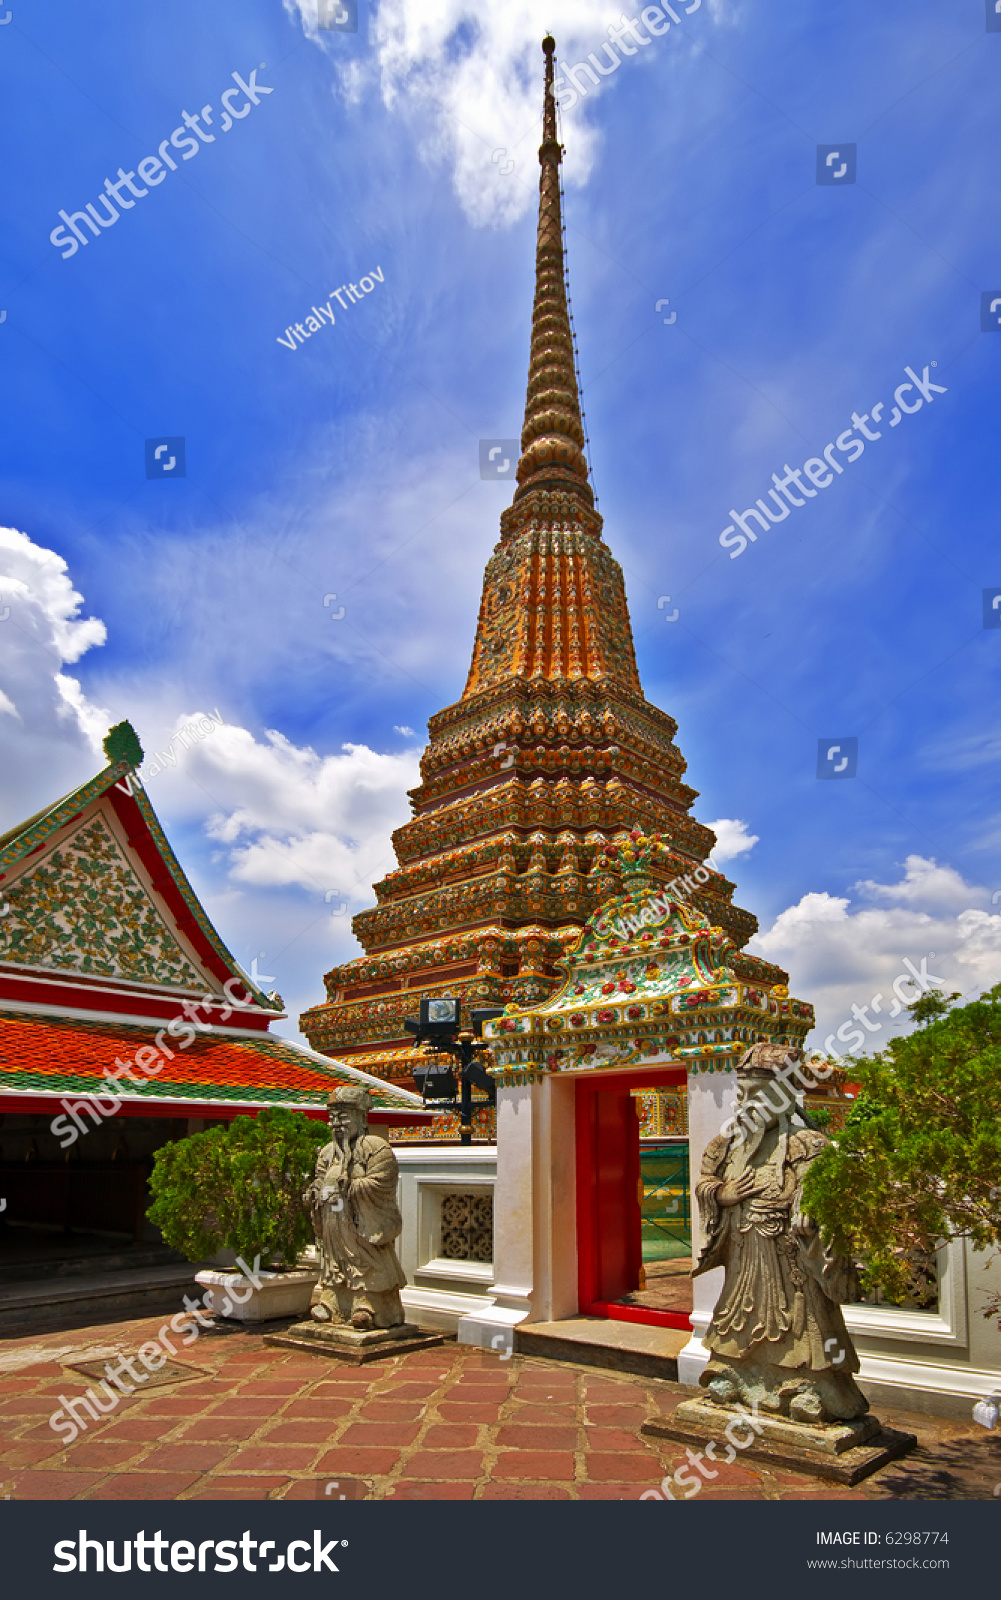 Authentic thai architecture in wat pho stock photo 6298774 for Wat architecture